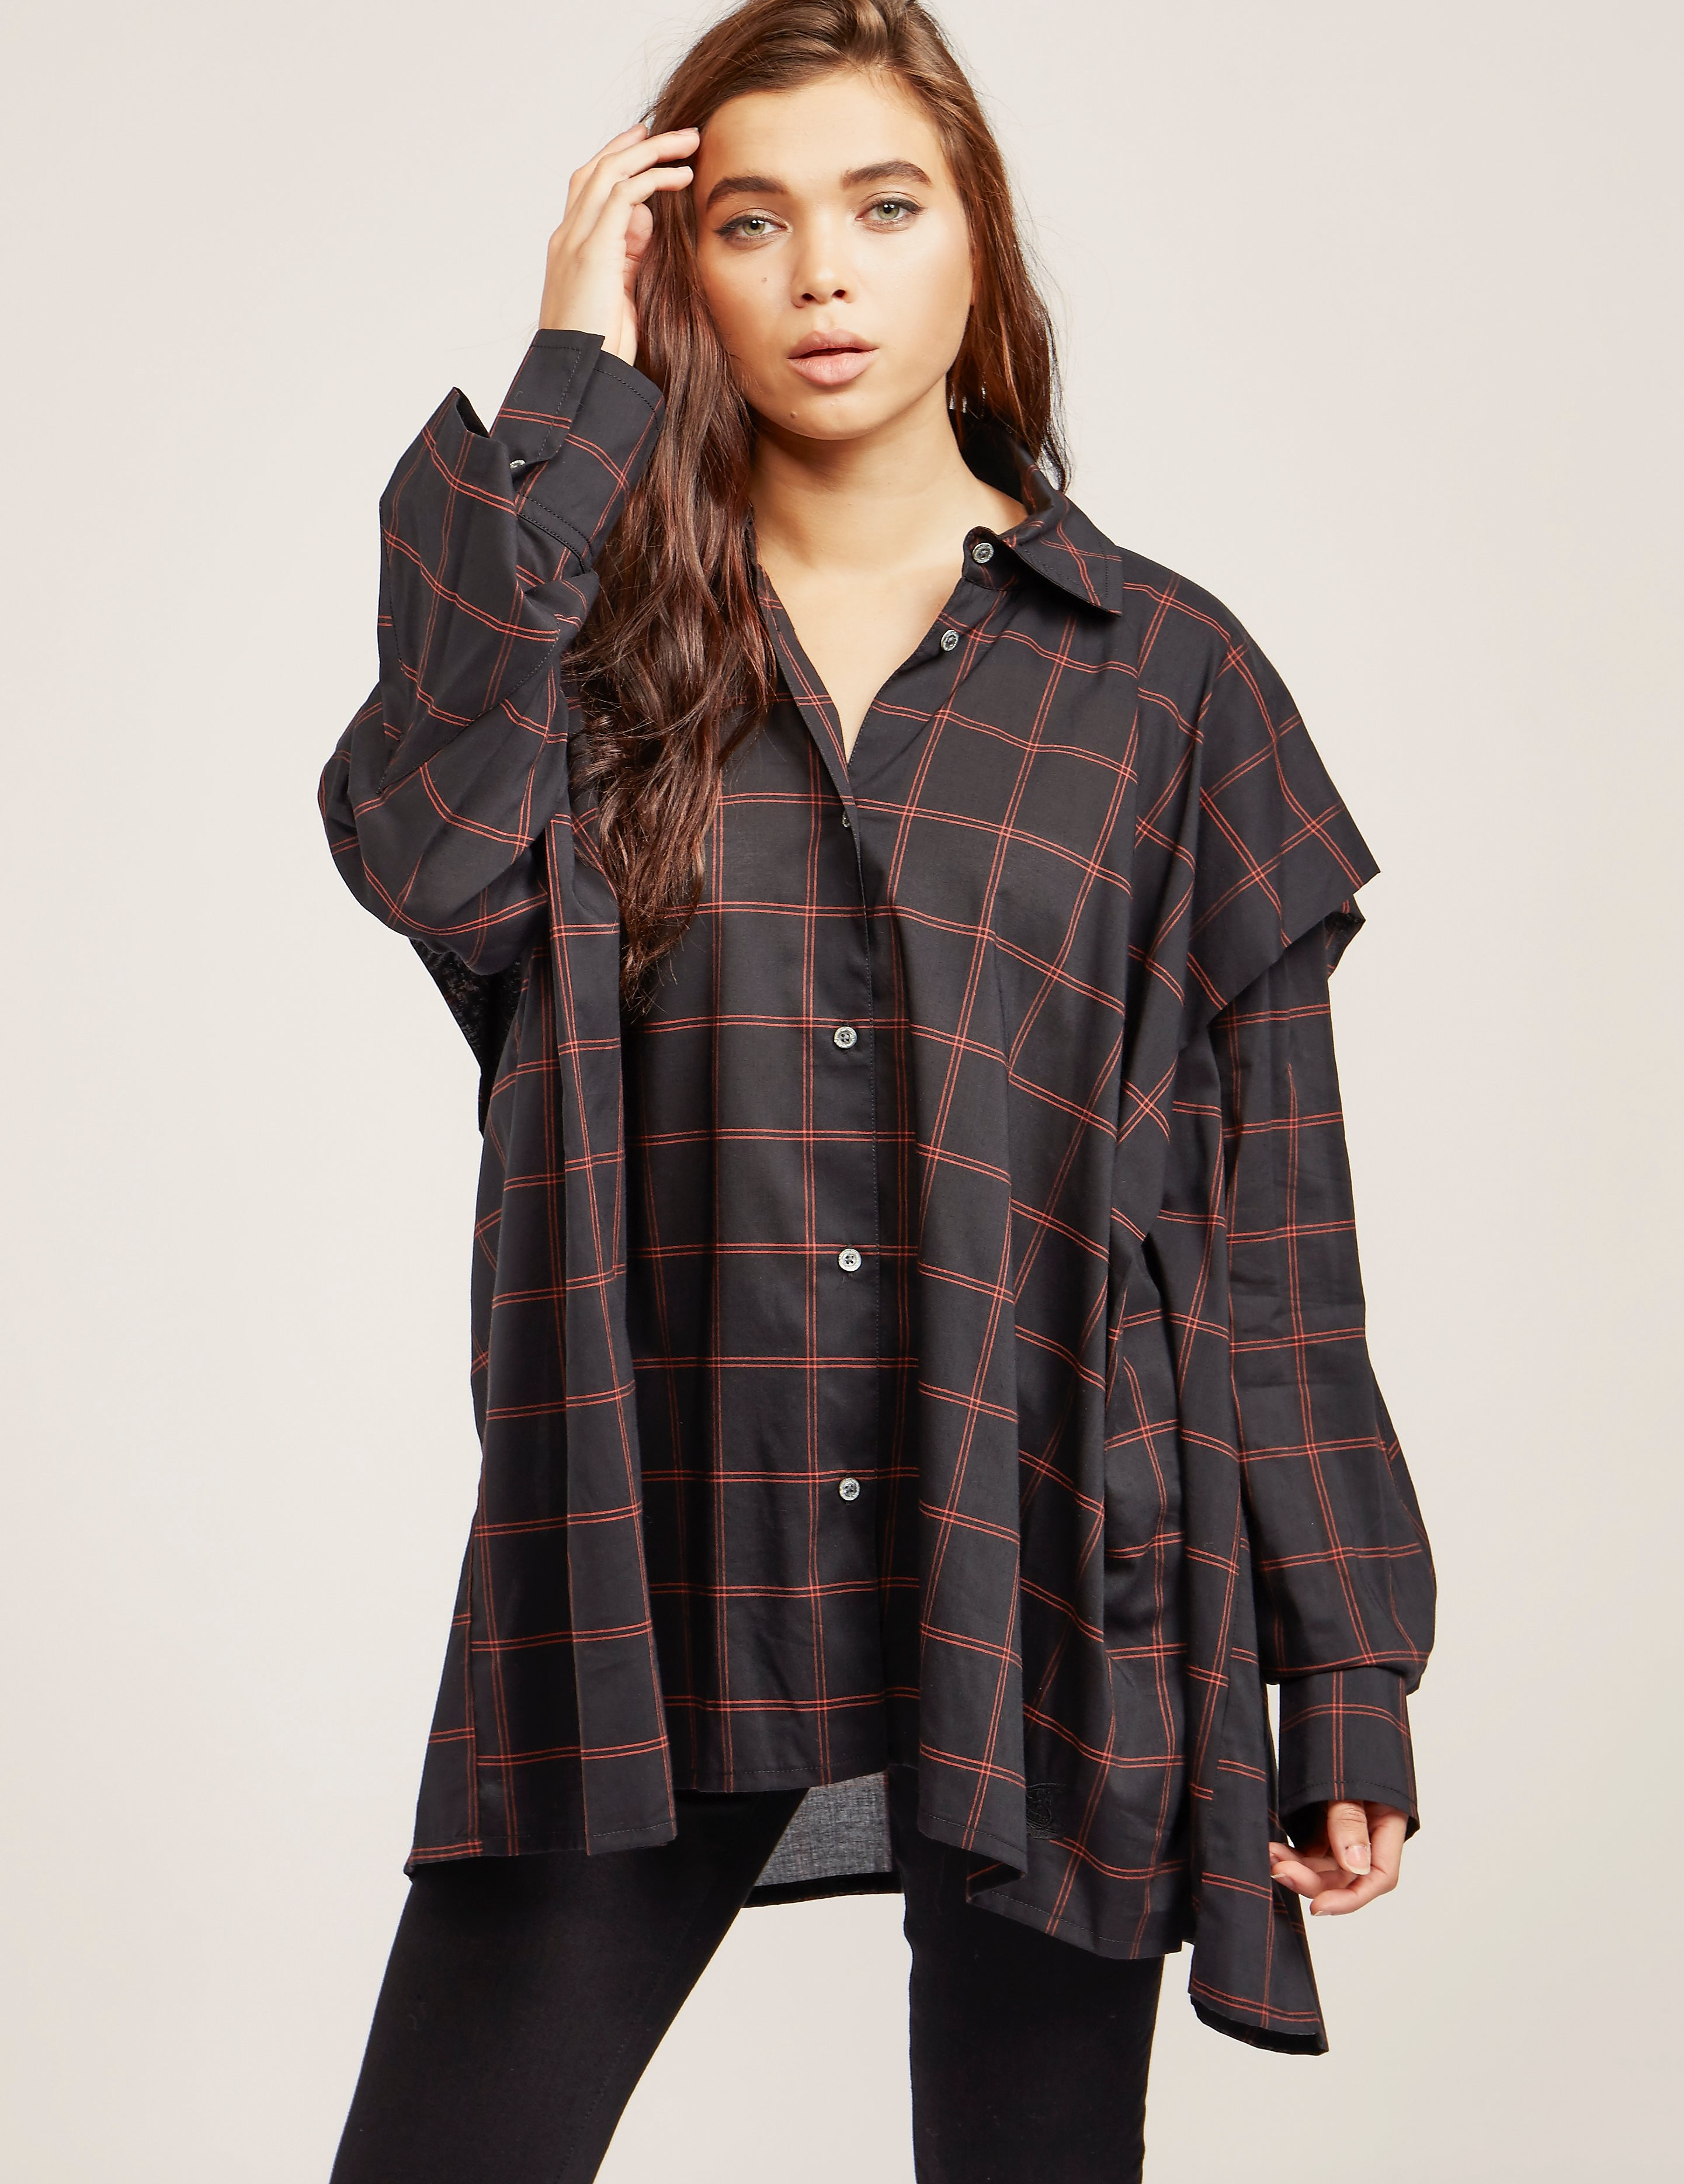 Vivienne Westwood Fever Long Sleeve Shirt